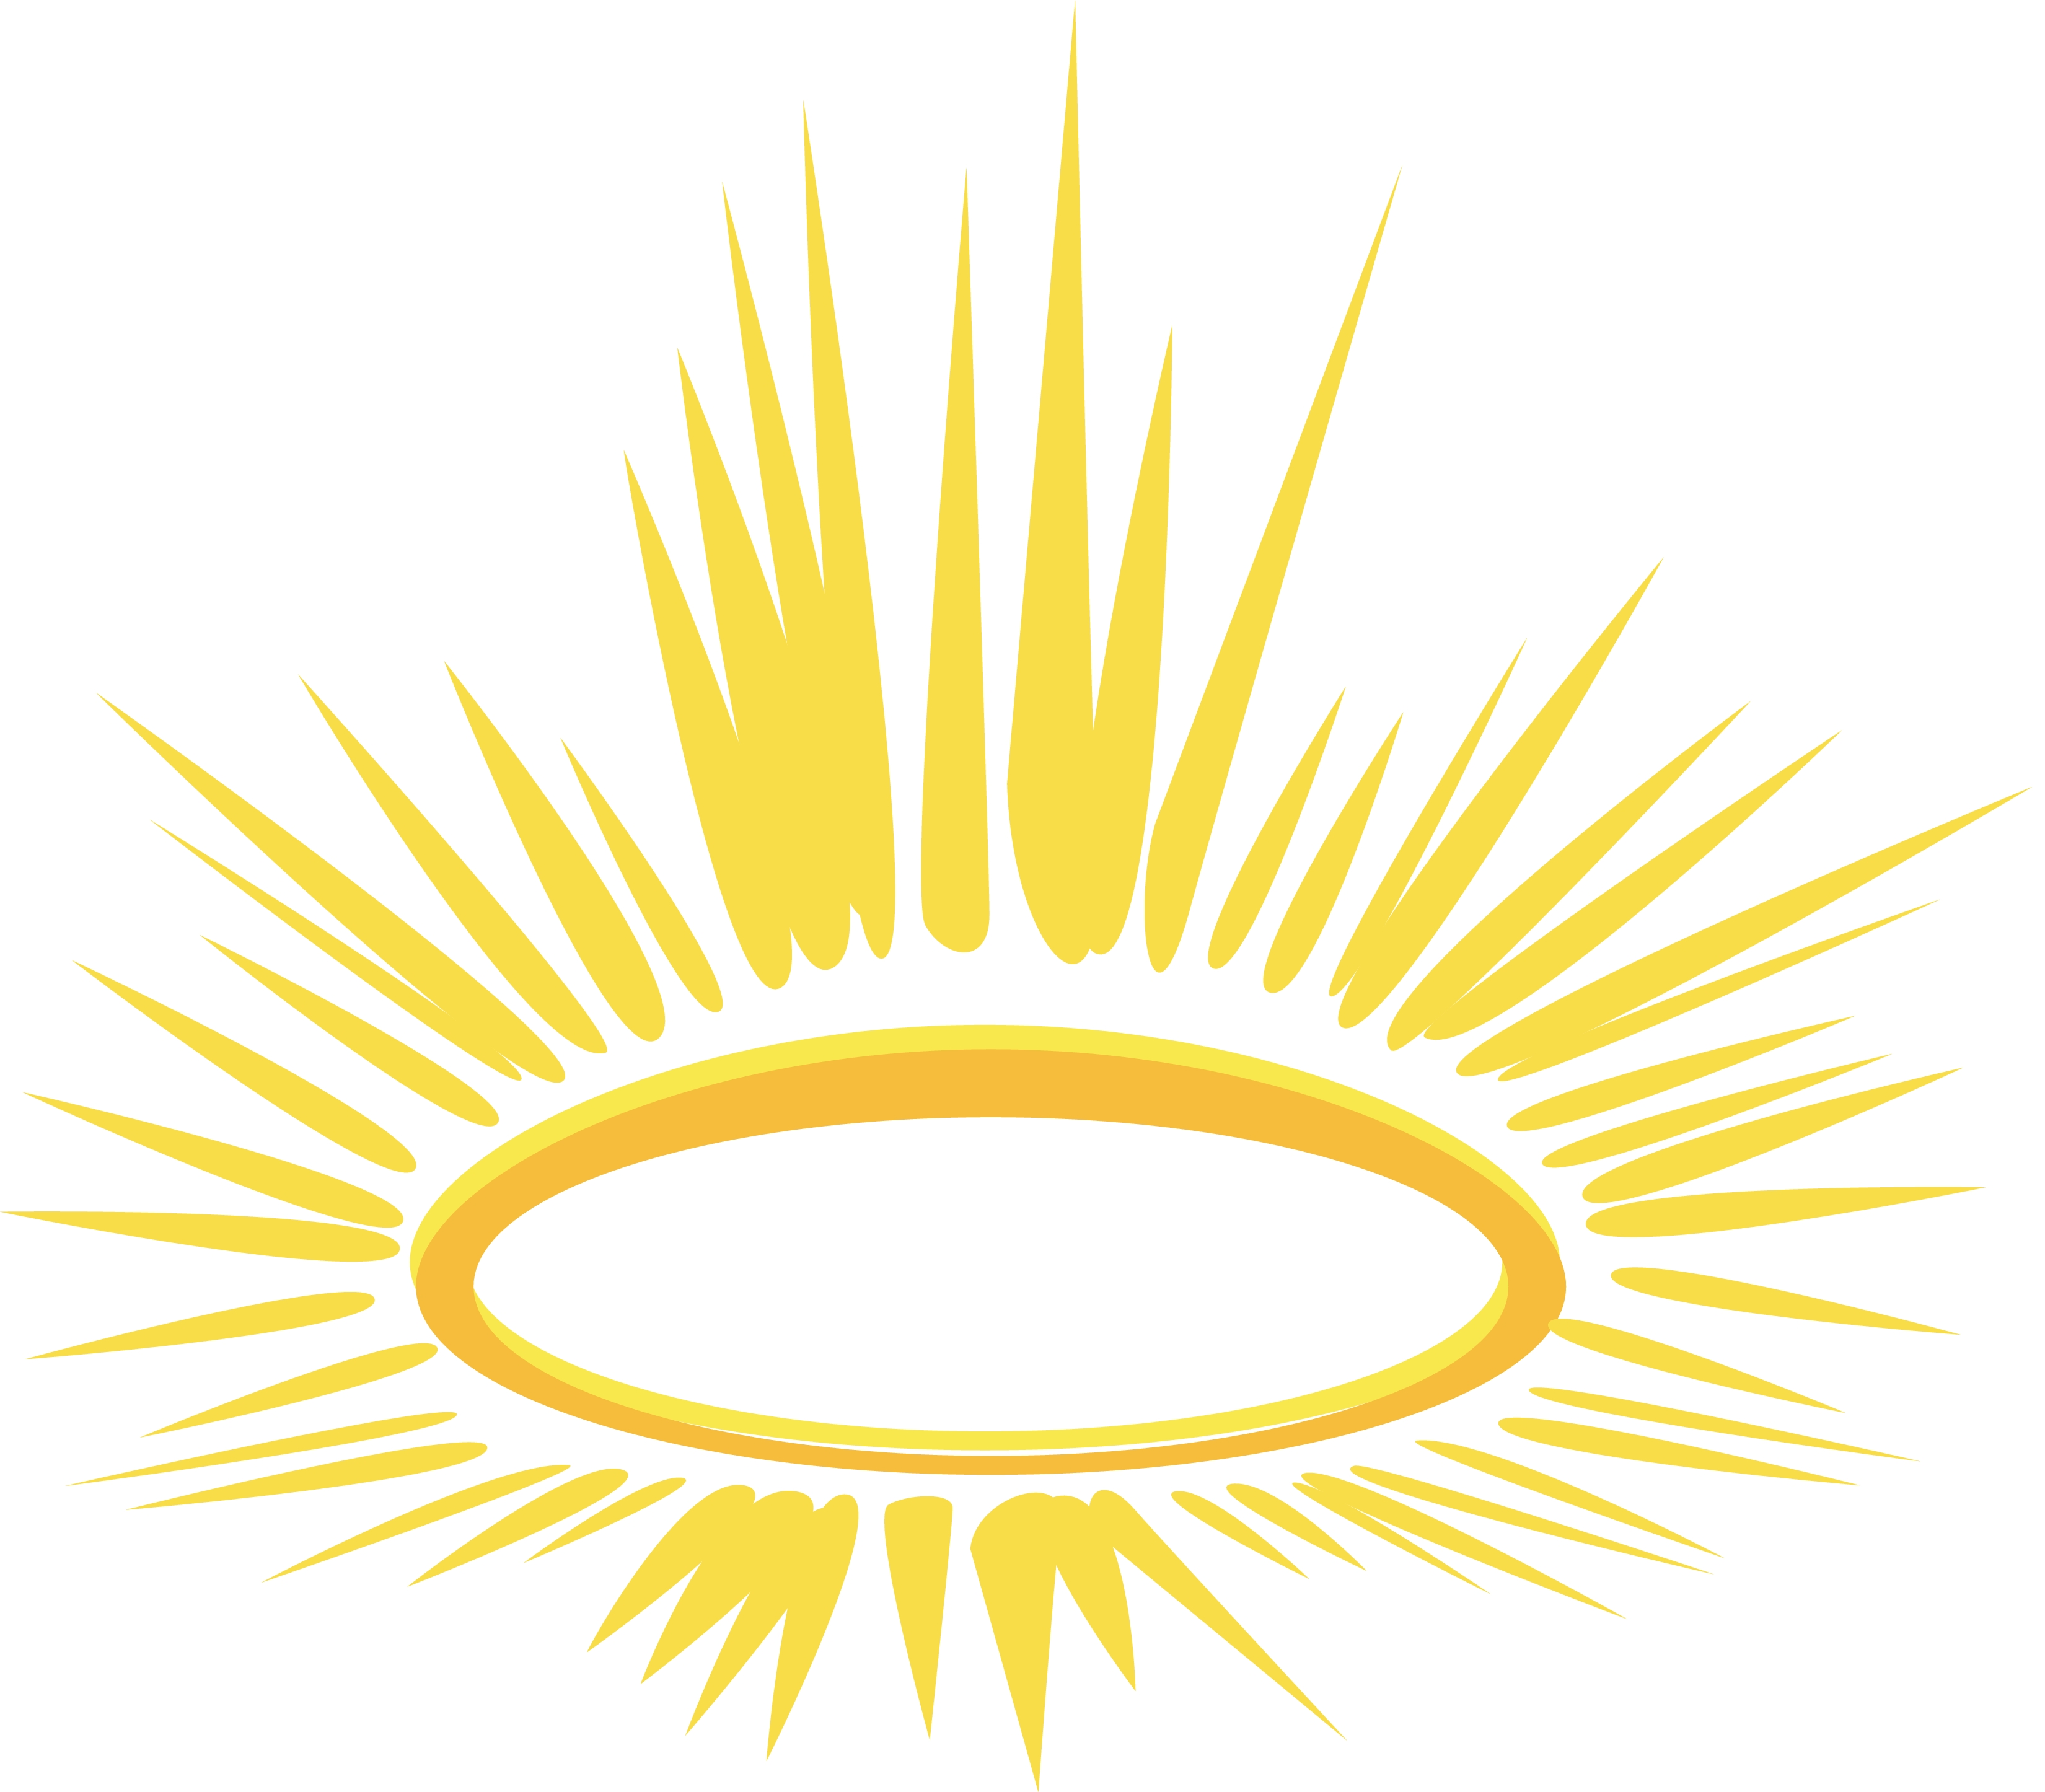 Angel head ring clipart image royalty free Free Saint Halo Cliparts, Download Free Clip Art, Free Clip Art on ... image royalty free